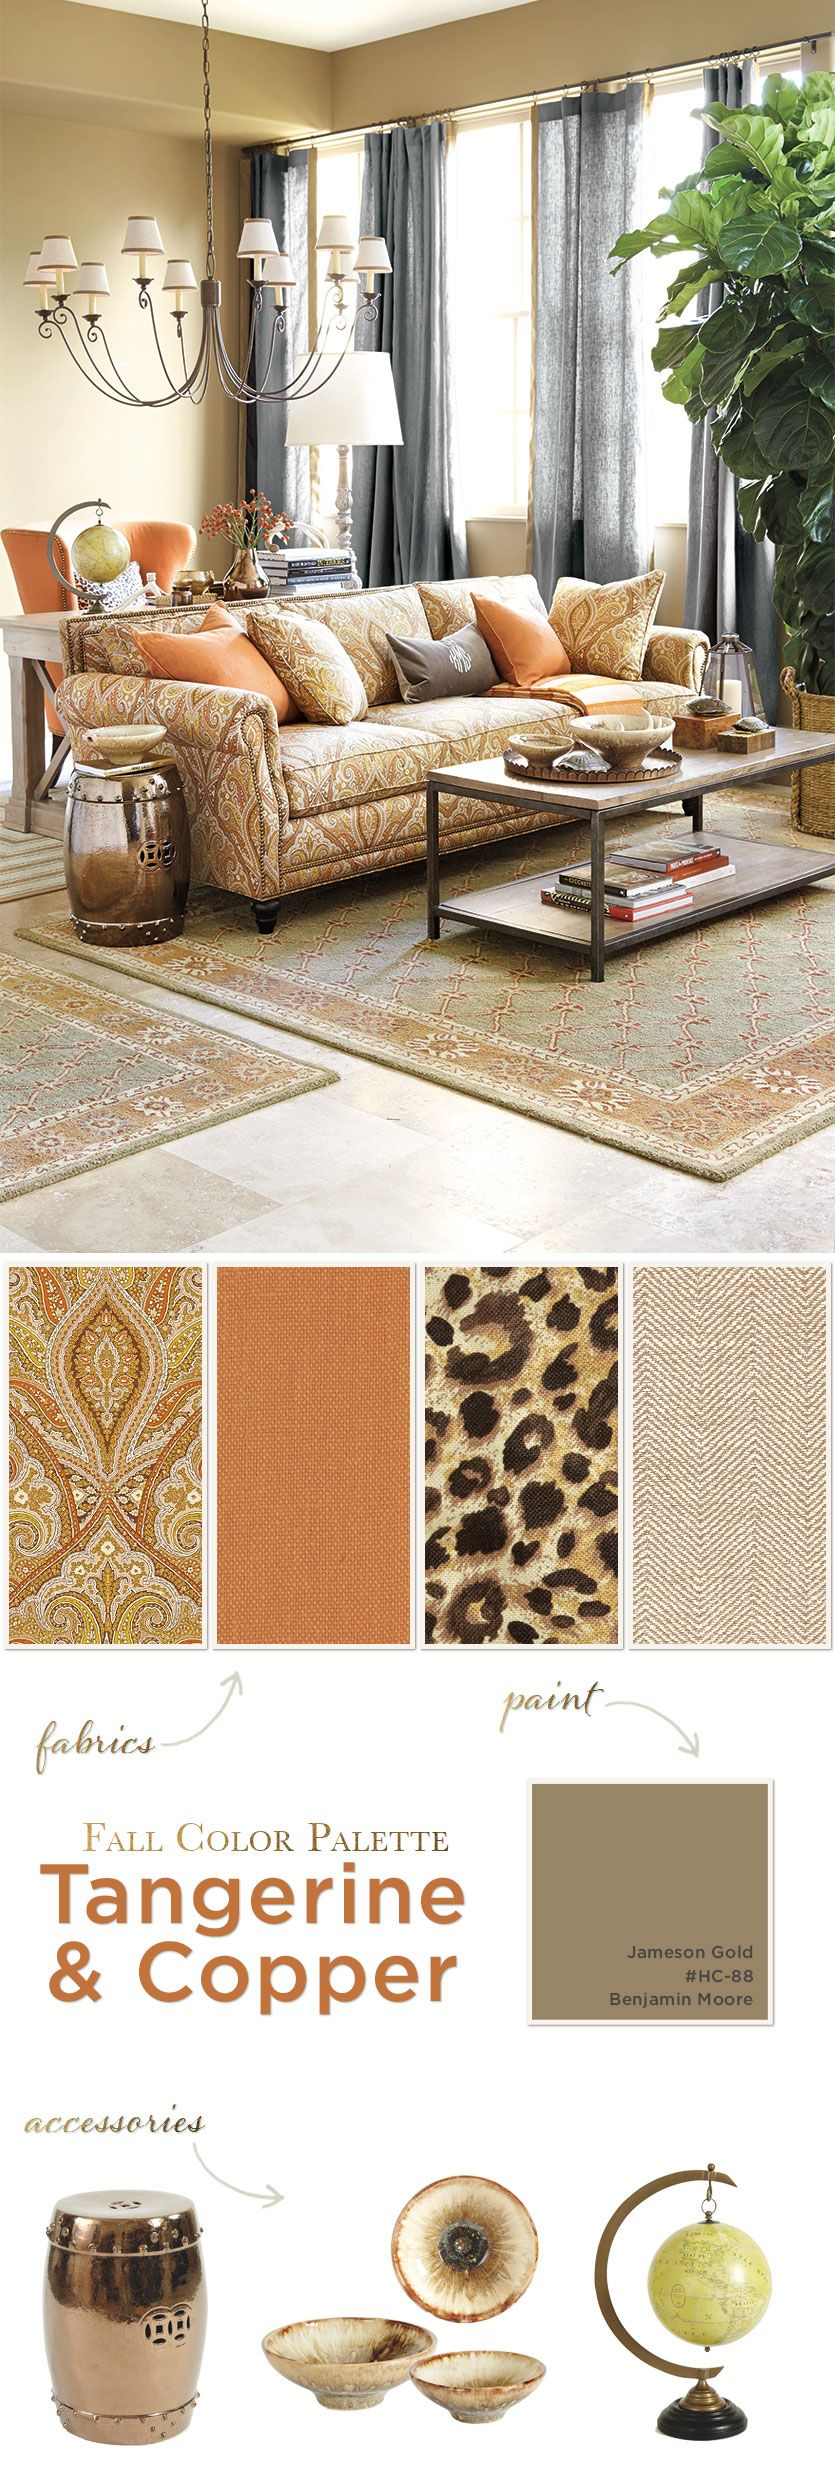 Fall Shade Palettes Copper And Tangerine Home Decor Life